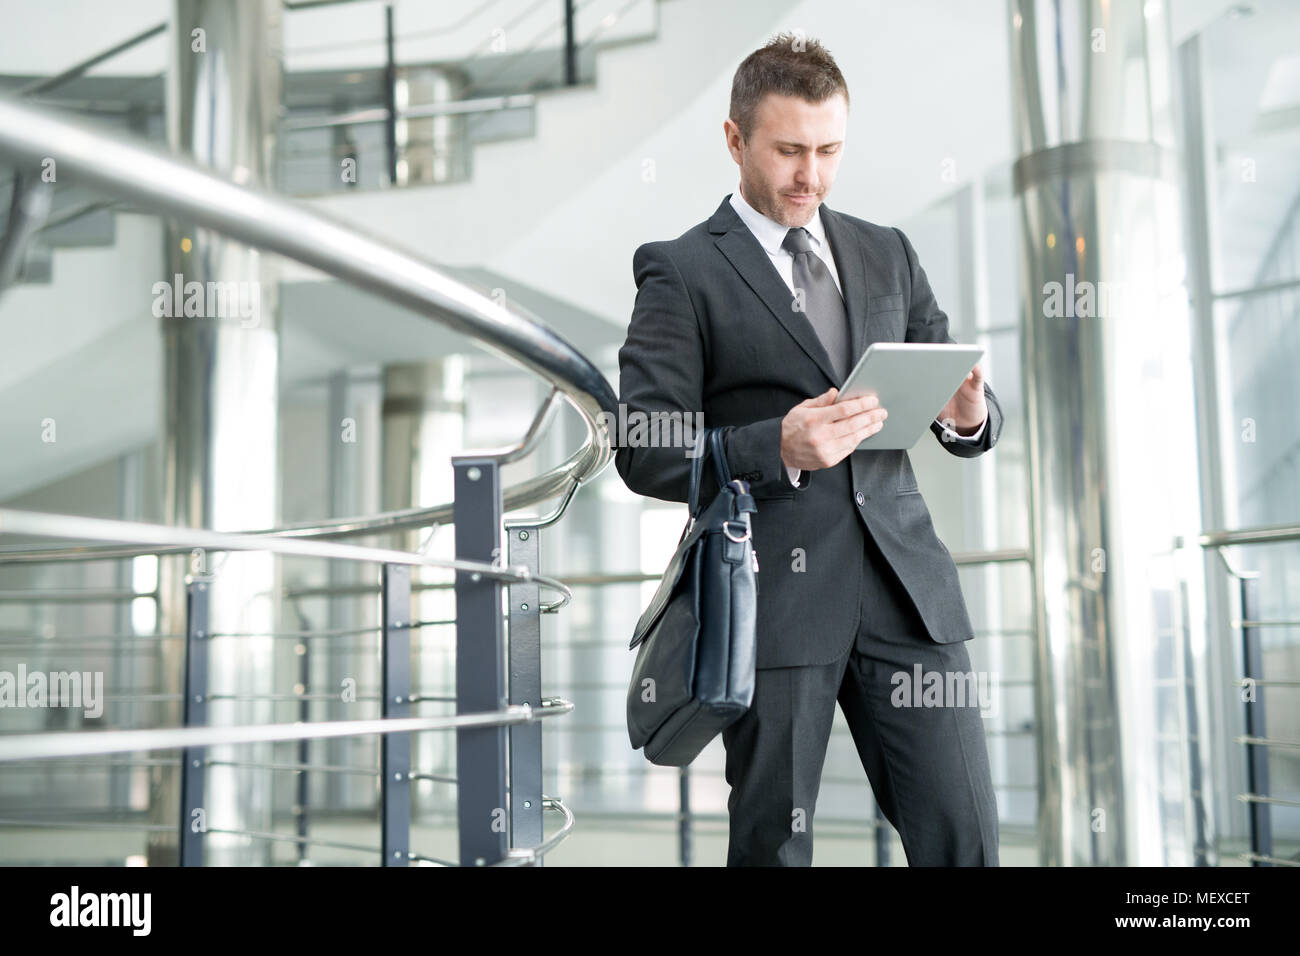 Businessman in office hall moderne de grande entreprise Photo Stock